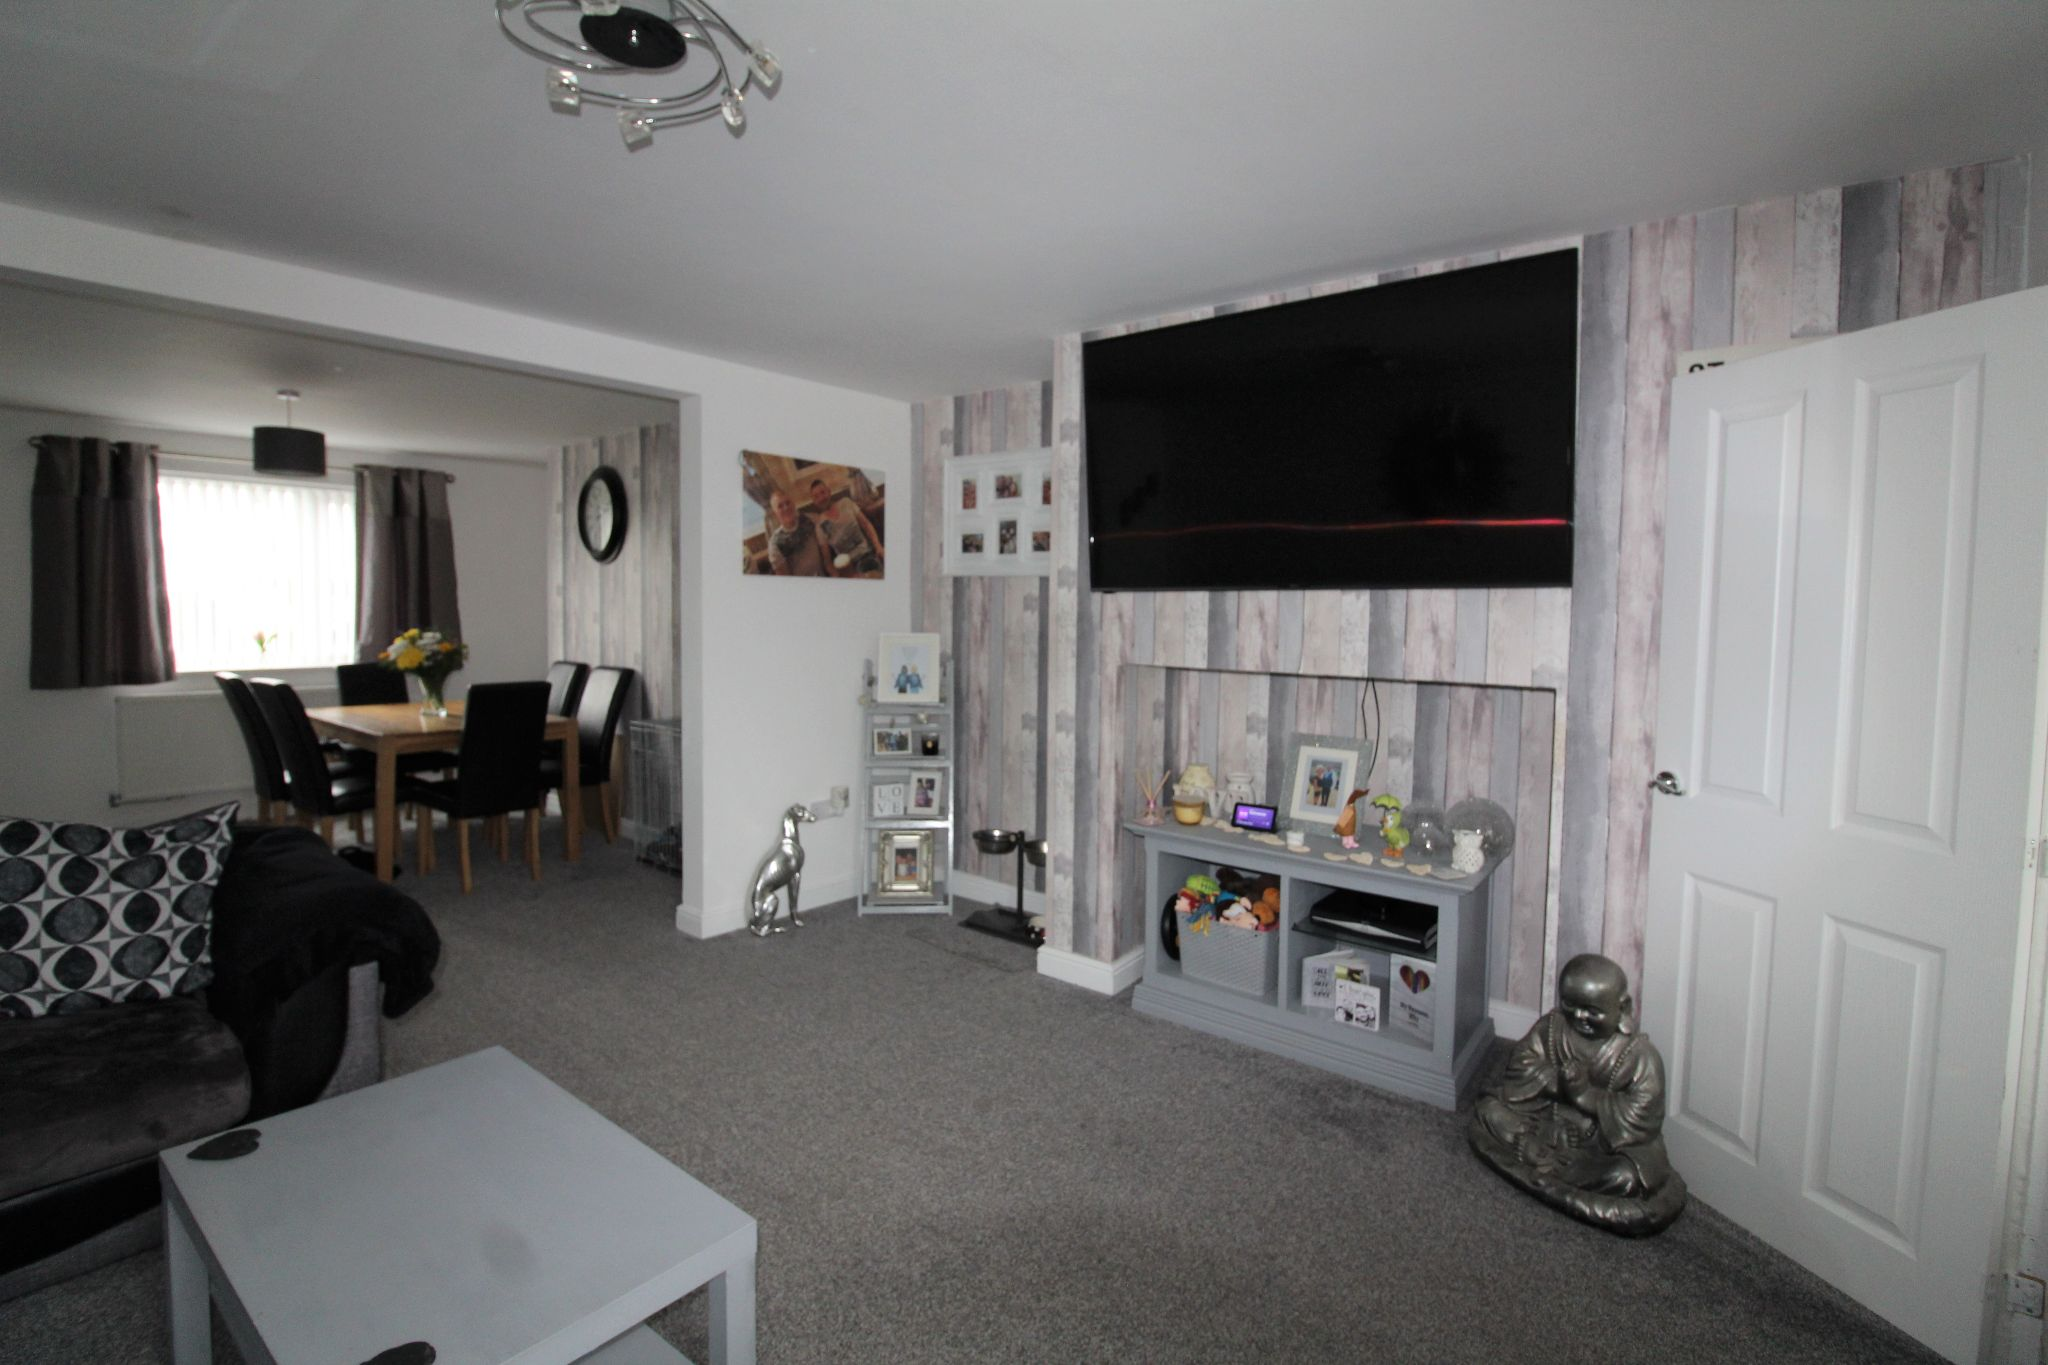 3 bedroom mid terraced house Sale Agreed in Roddymoor - Photograph 8.